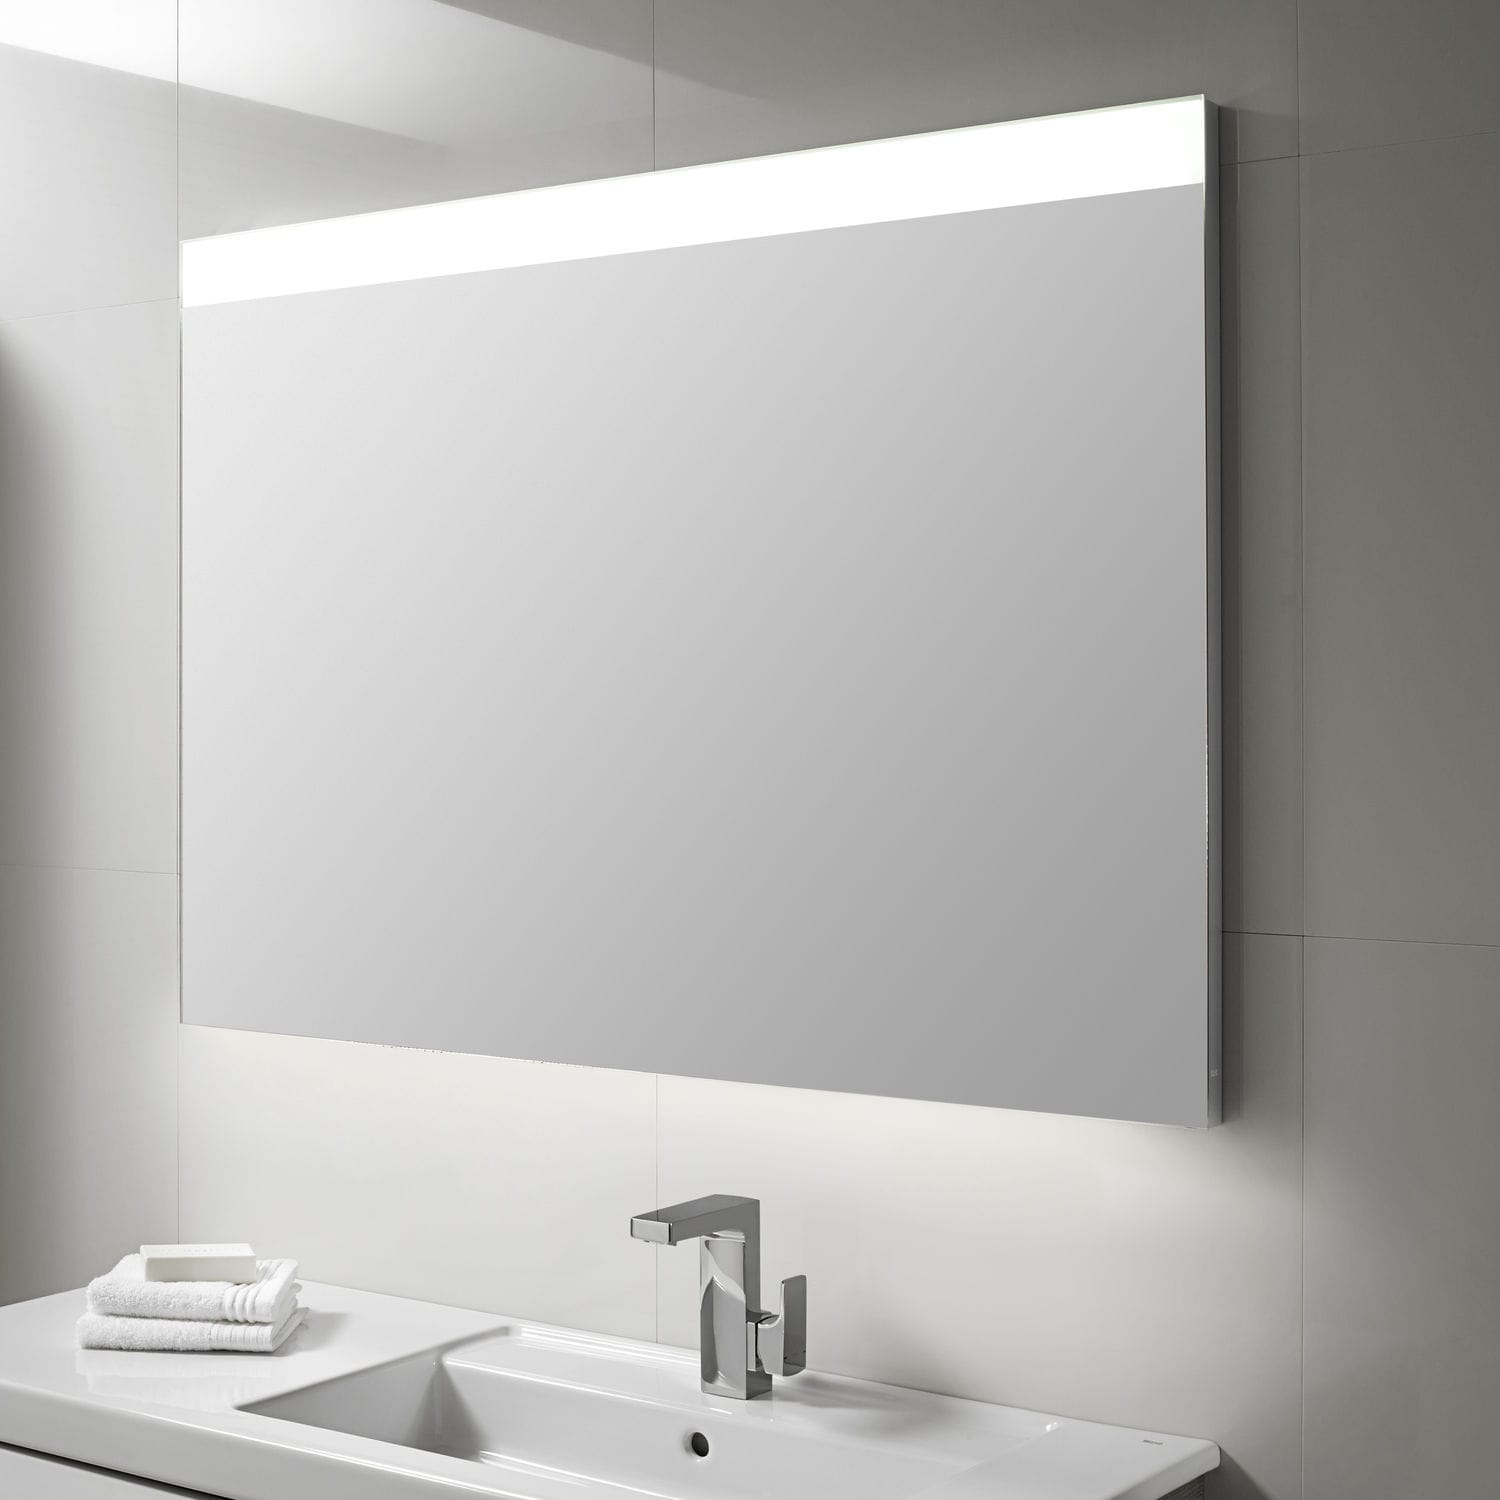 Wall-mounted bathroom mirror / LED-illuminated / contemporary ...